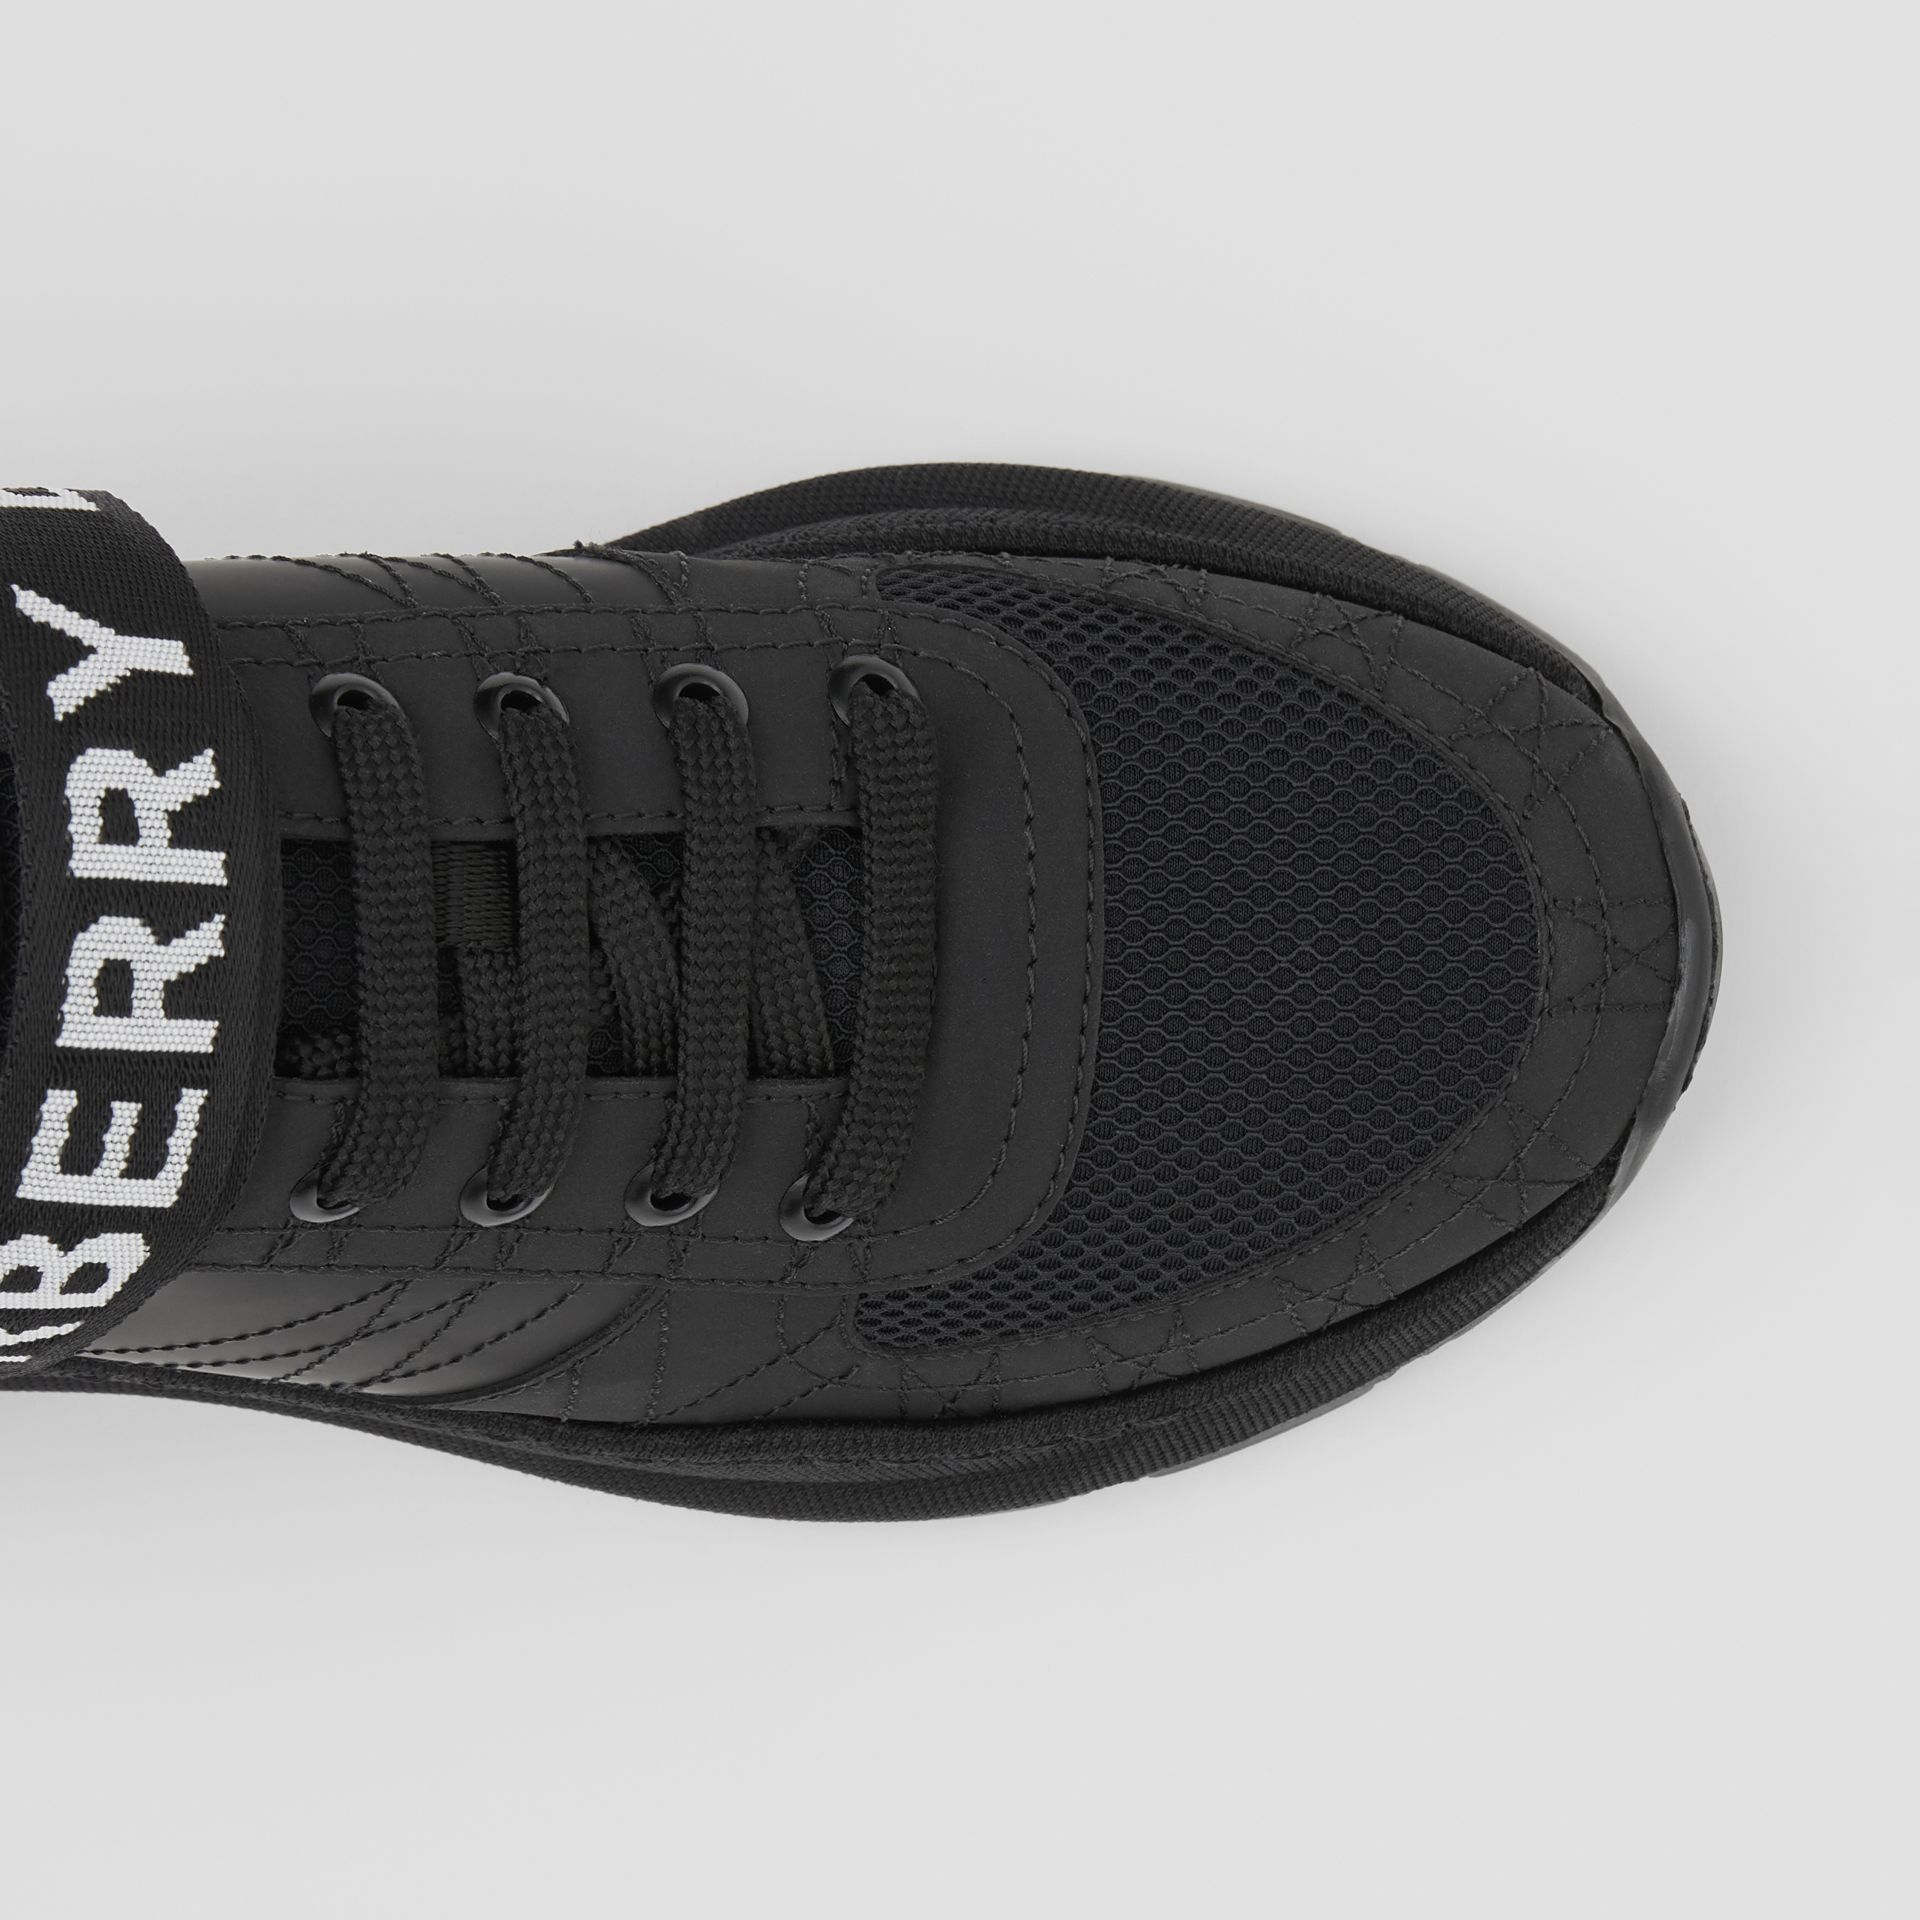 Logo Detail Leather, Nubuck and Mesh Sneakers in Black - Women | Burberry - gallery image 6